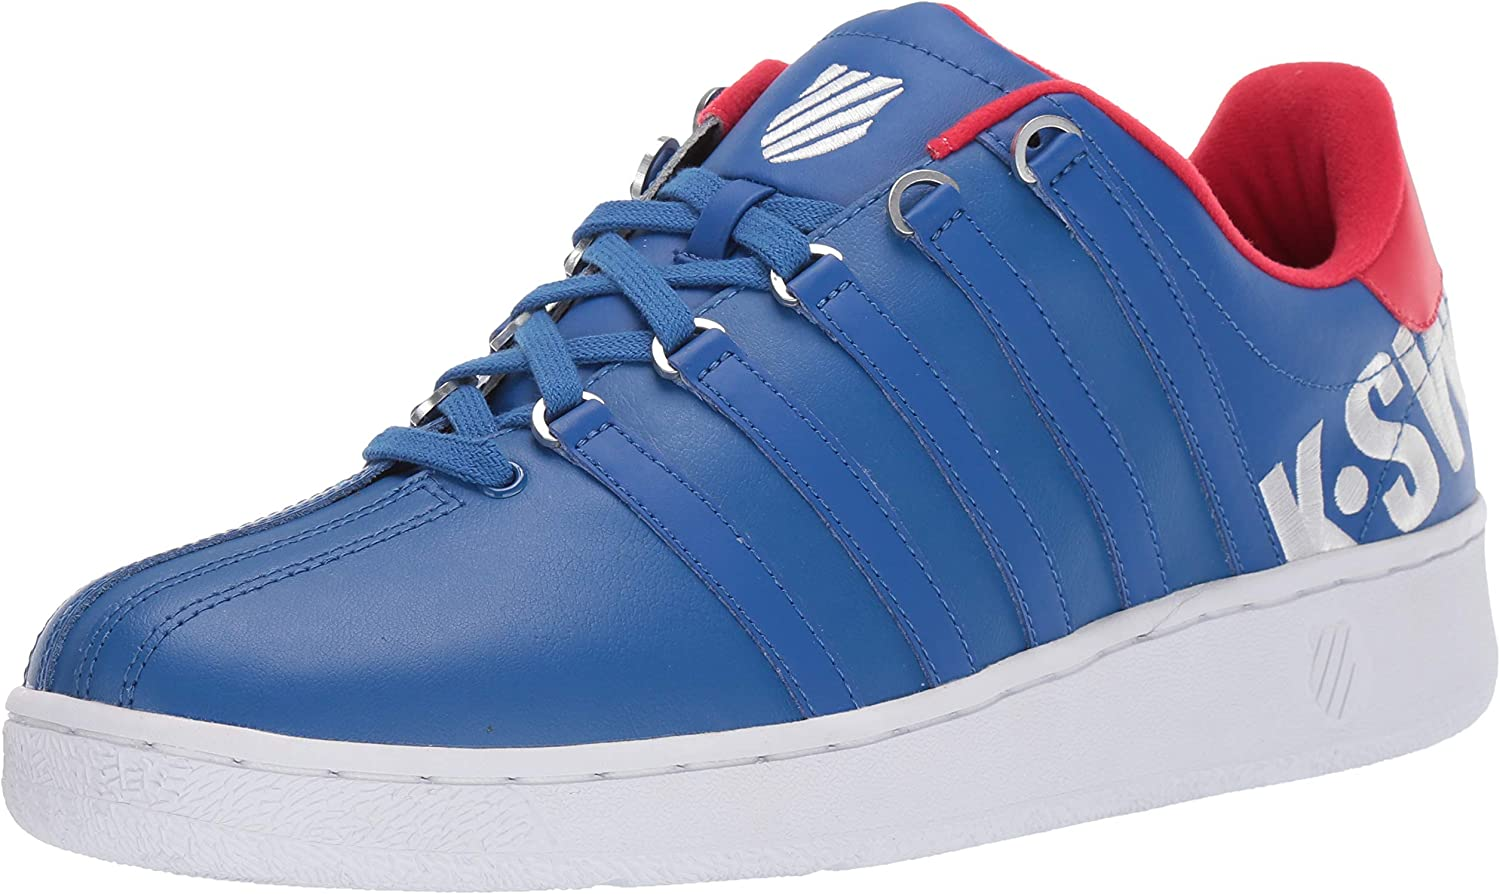 Vintage Sneakers, Retro Designs for Women K-Swiss Mens Classic VN XL Sneaker $76.95 AT vintagedancer.com